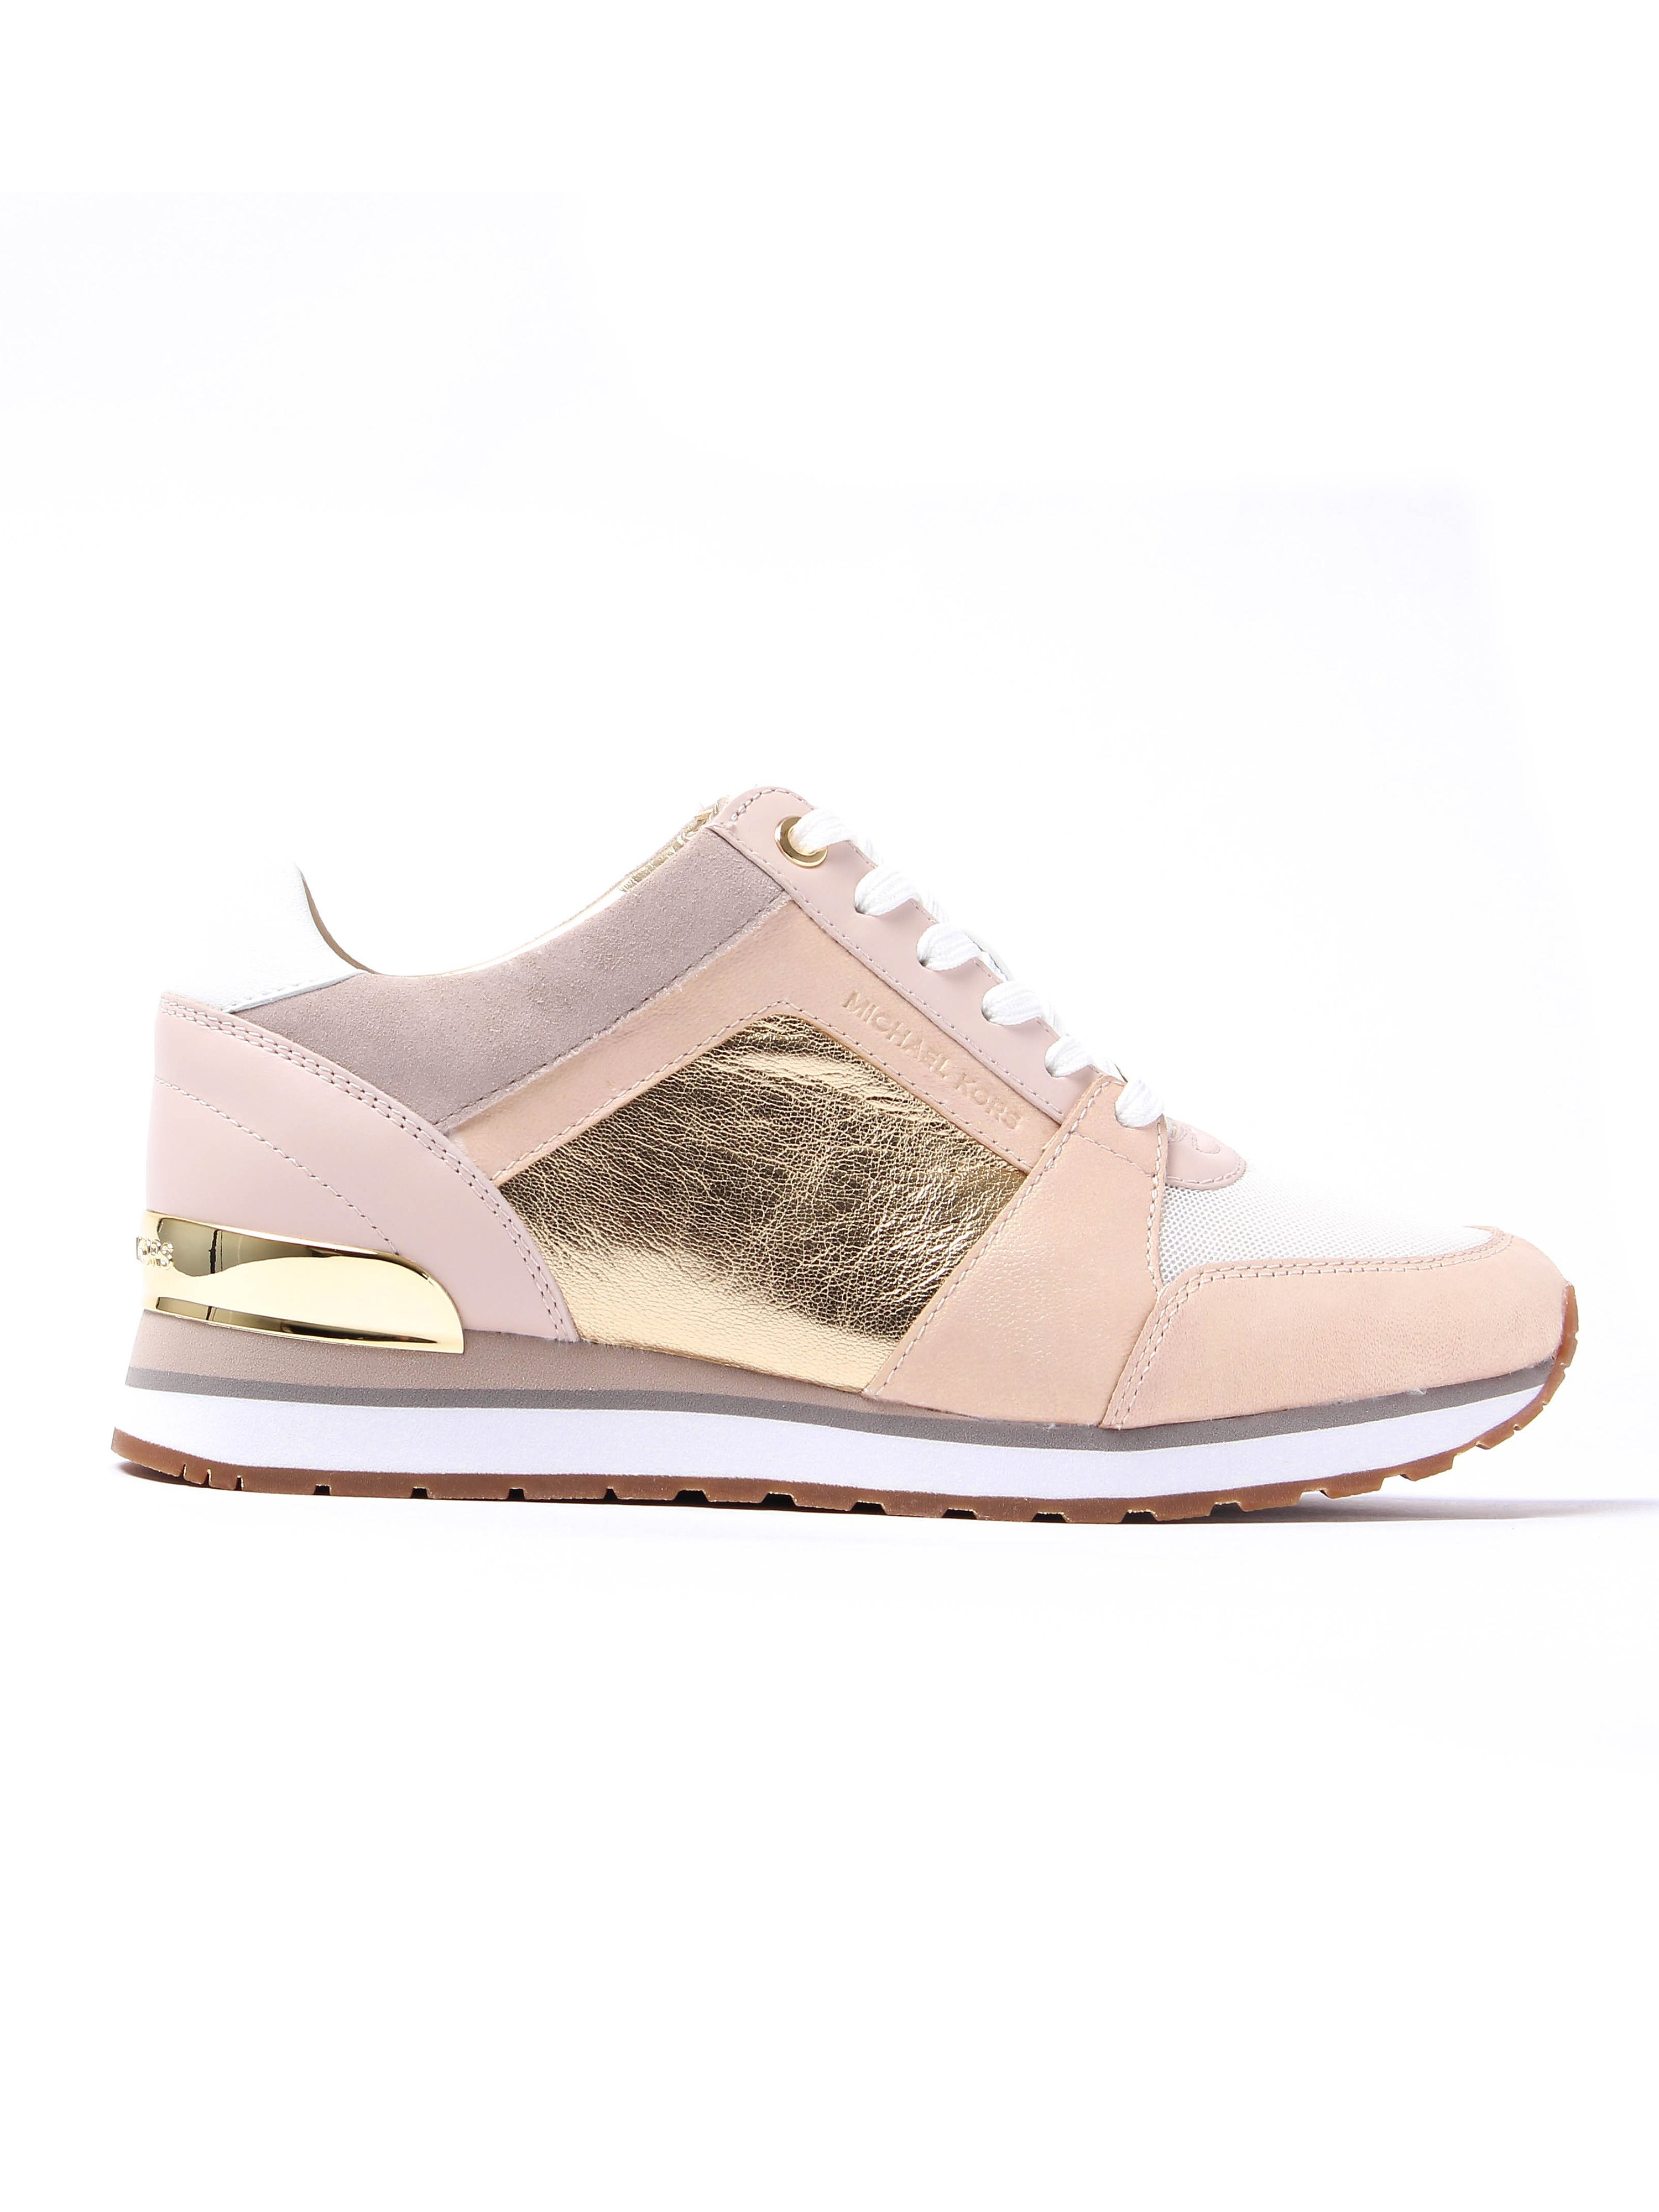 MICHAEL Michael Kors Women's Billie Metallic Leather Trainers - Pale Pink & Gold